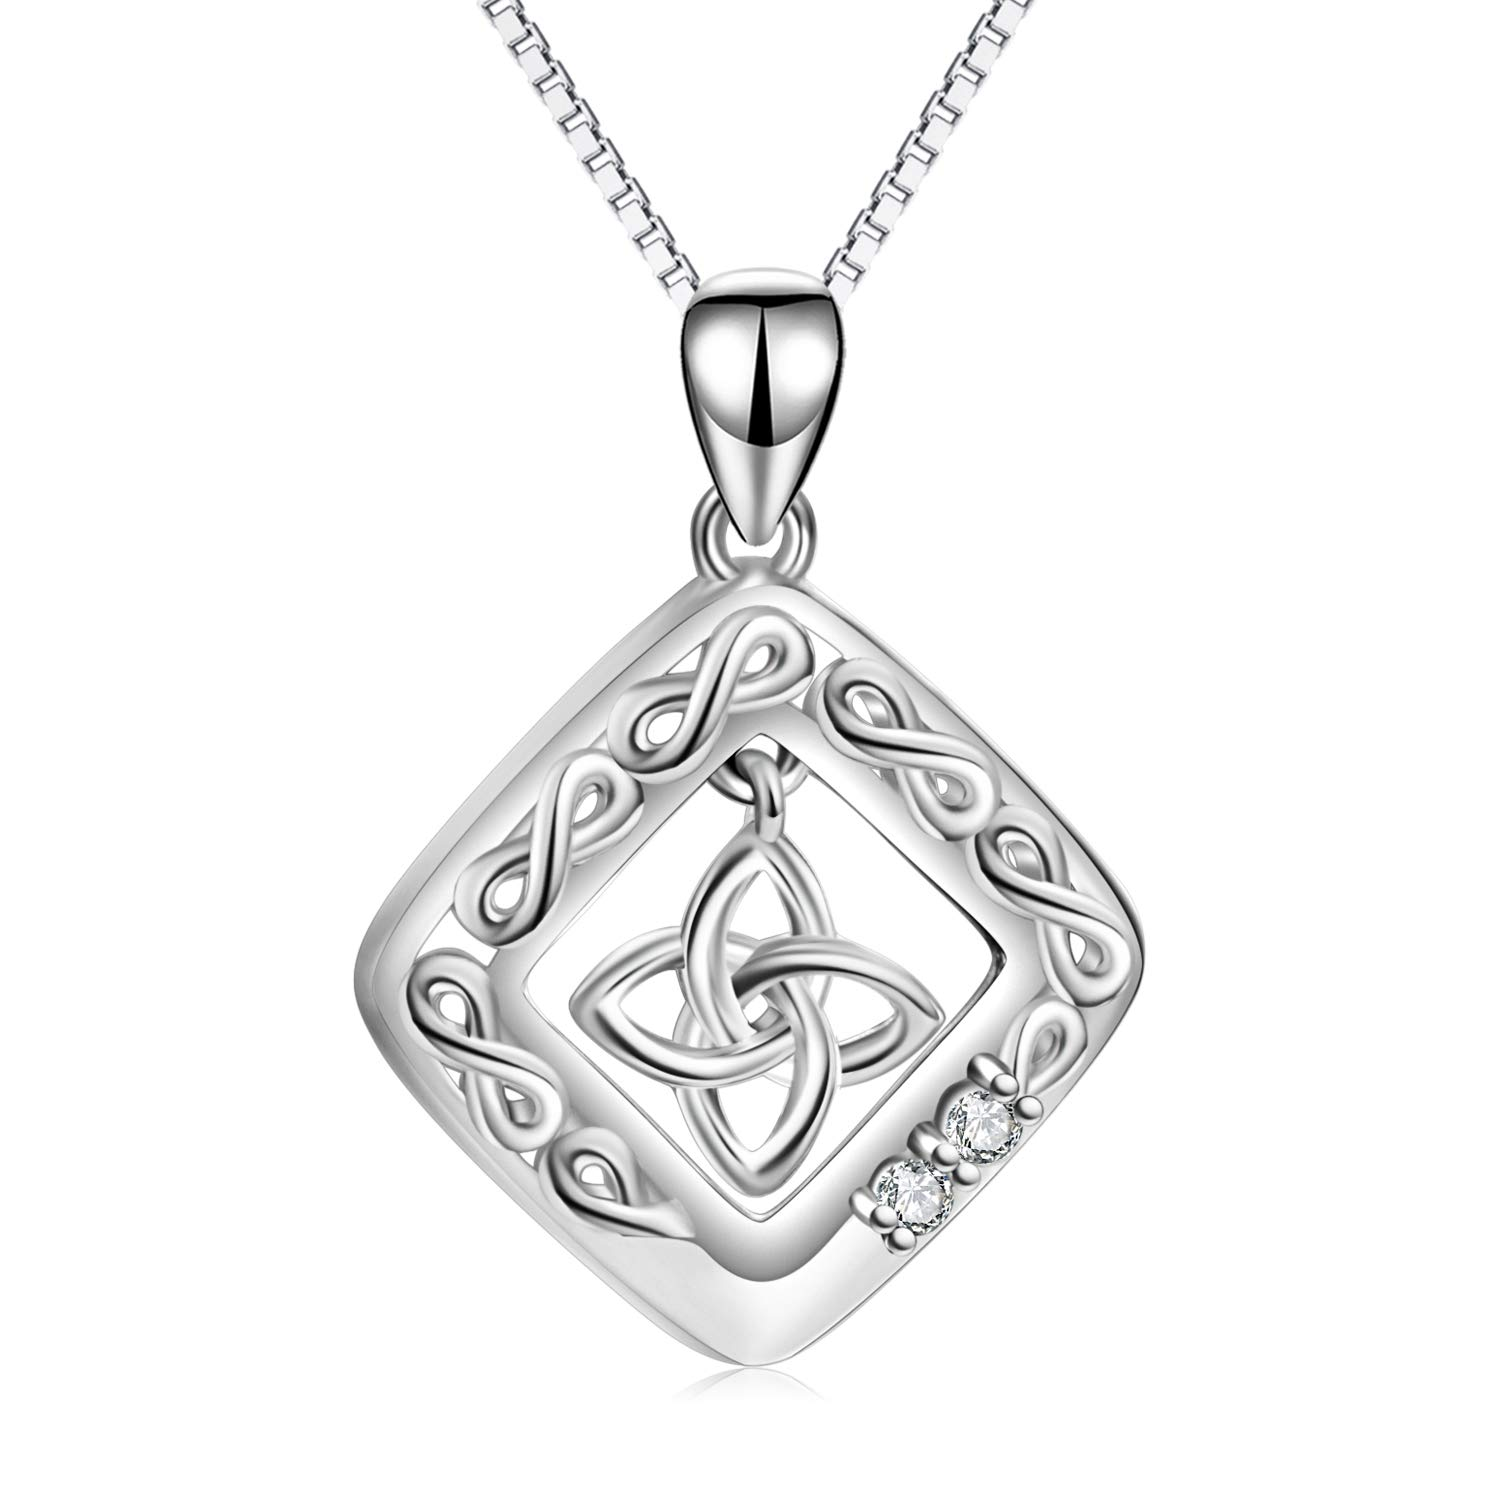 LUHE Celtic Jewelry Sterling Silver Good Luck Statement Pendant Triquetra Celtic Knot Necklace for Women Girls, 18''